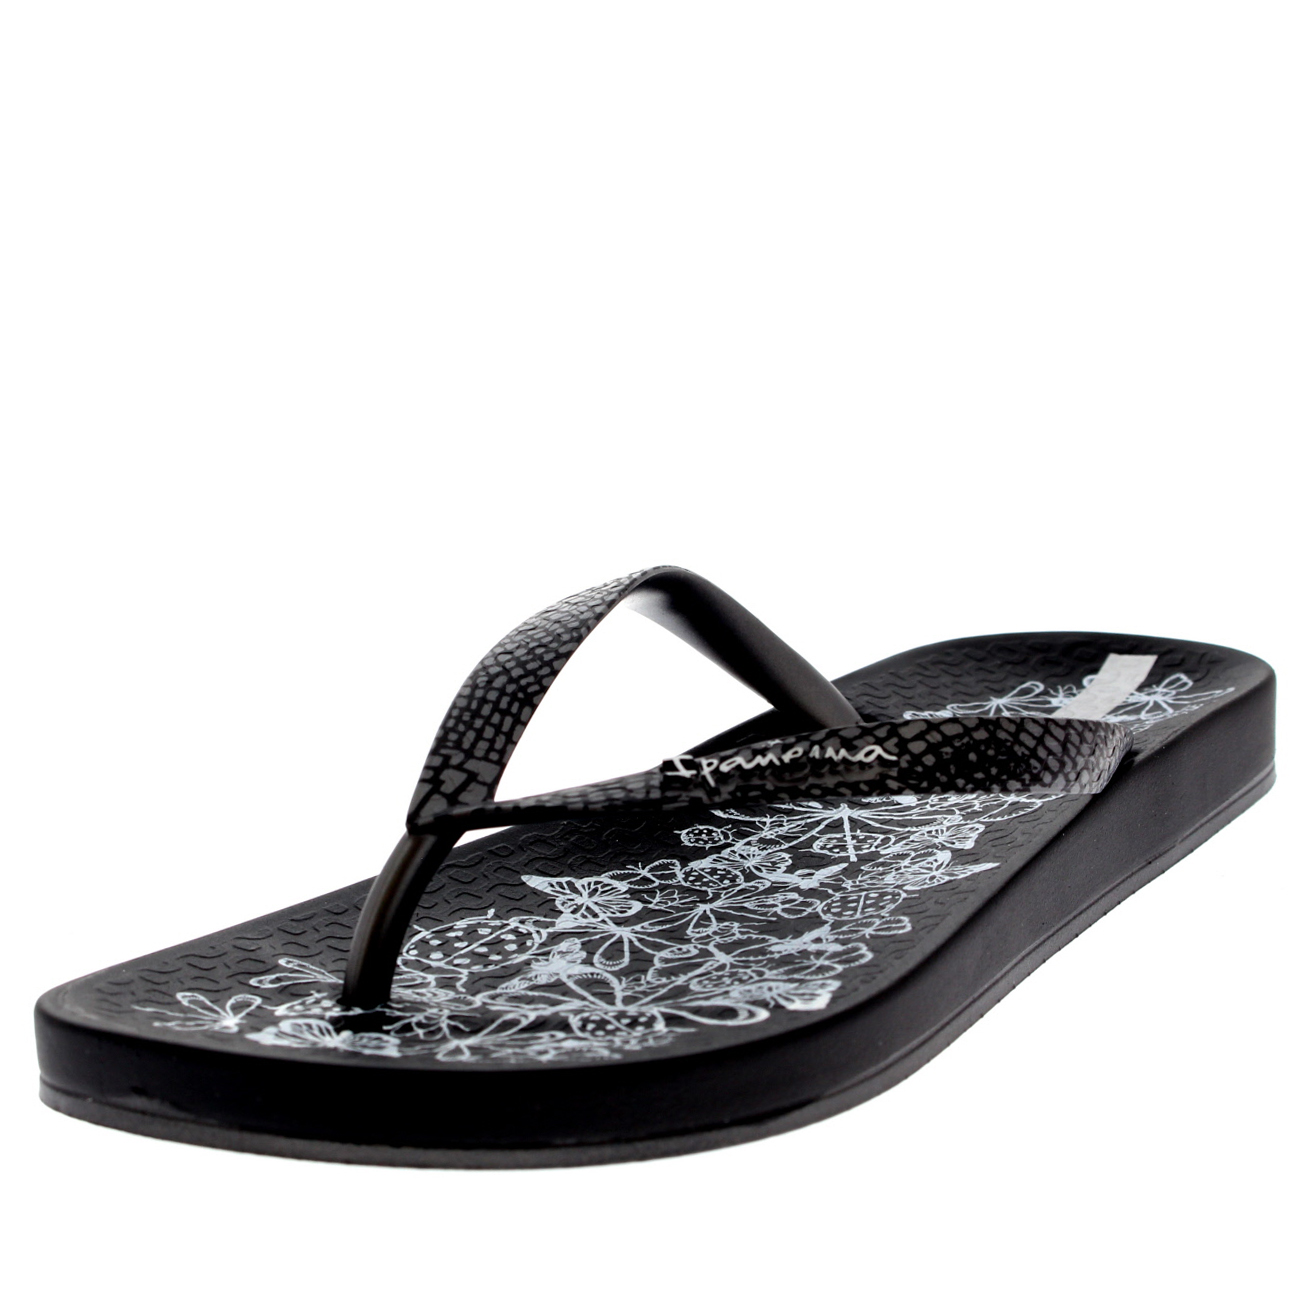 Ipanema Womens Sparkle Lightweight Glitter Toe Post Rubber Flip Flops - Dark Gray - 8